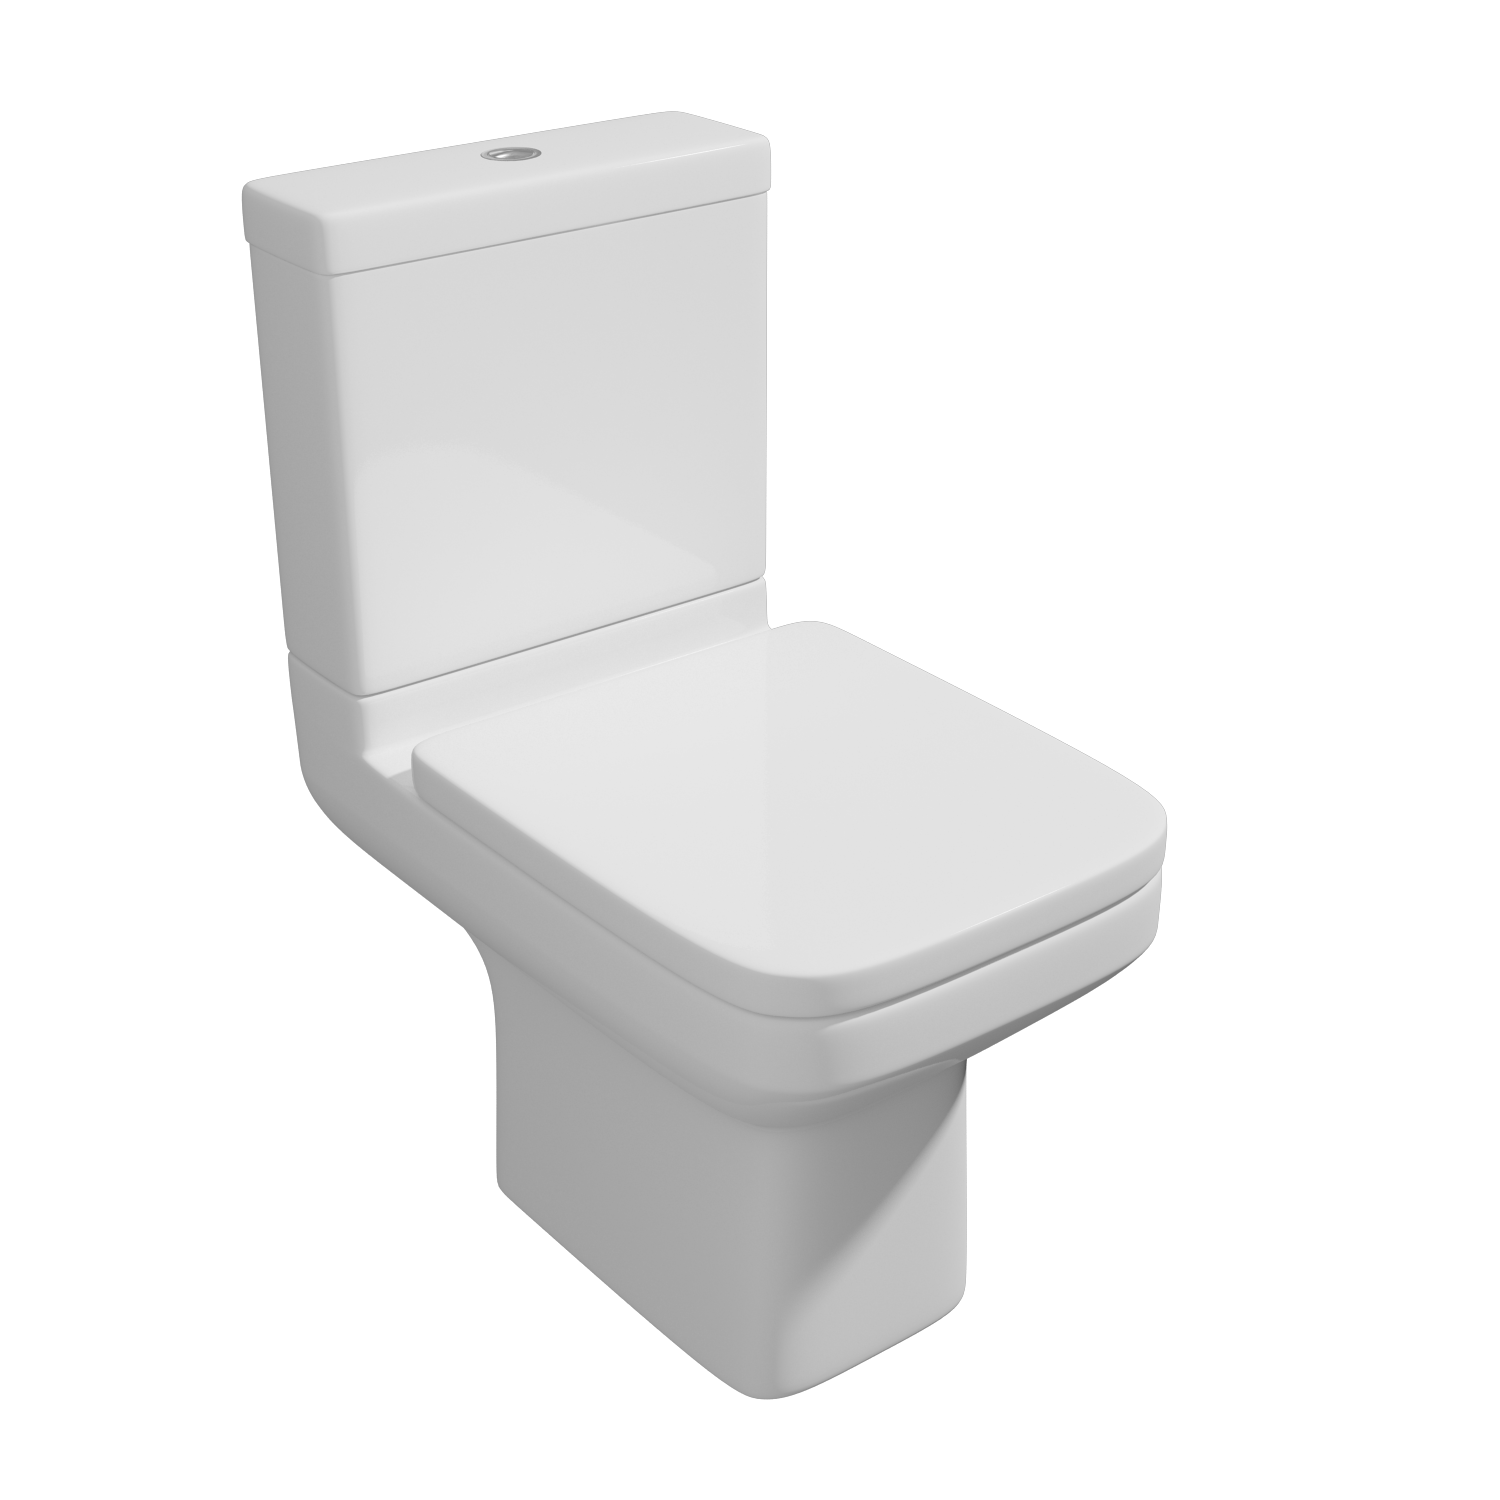 K-Vit Trim Close Coupled WC Pan & Cistern (Seat Not Included)